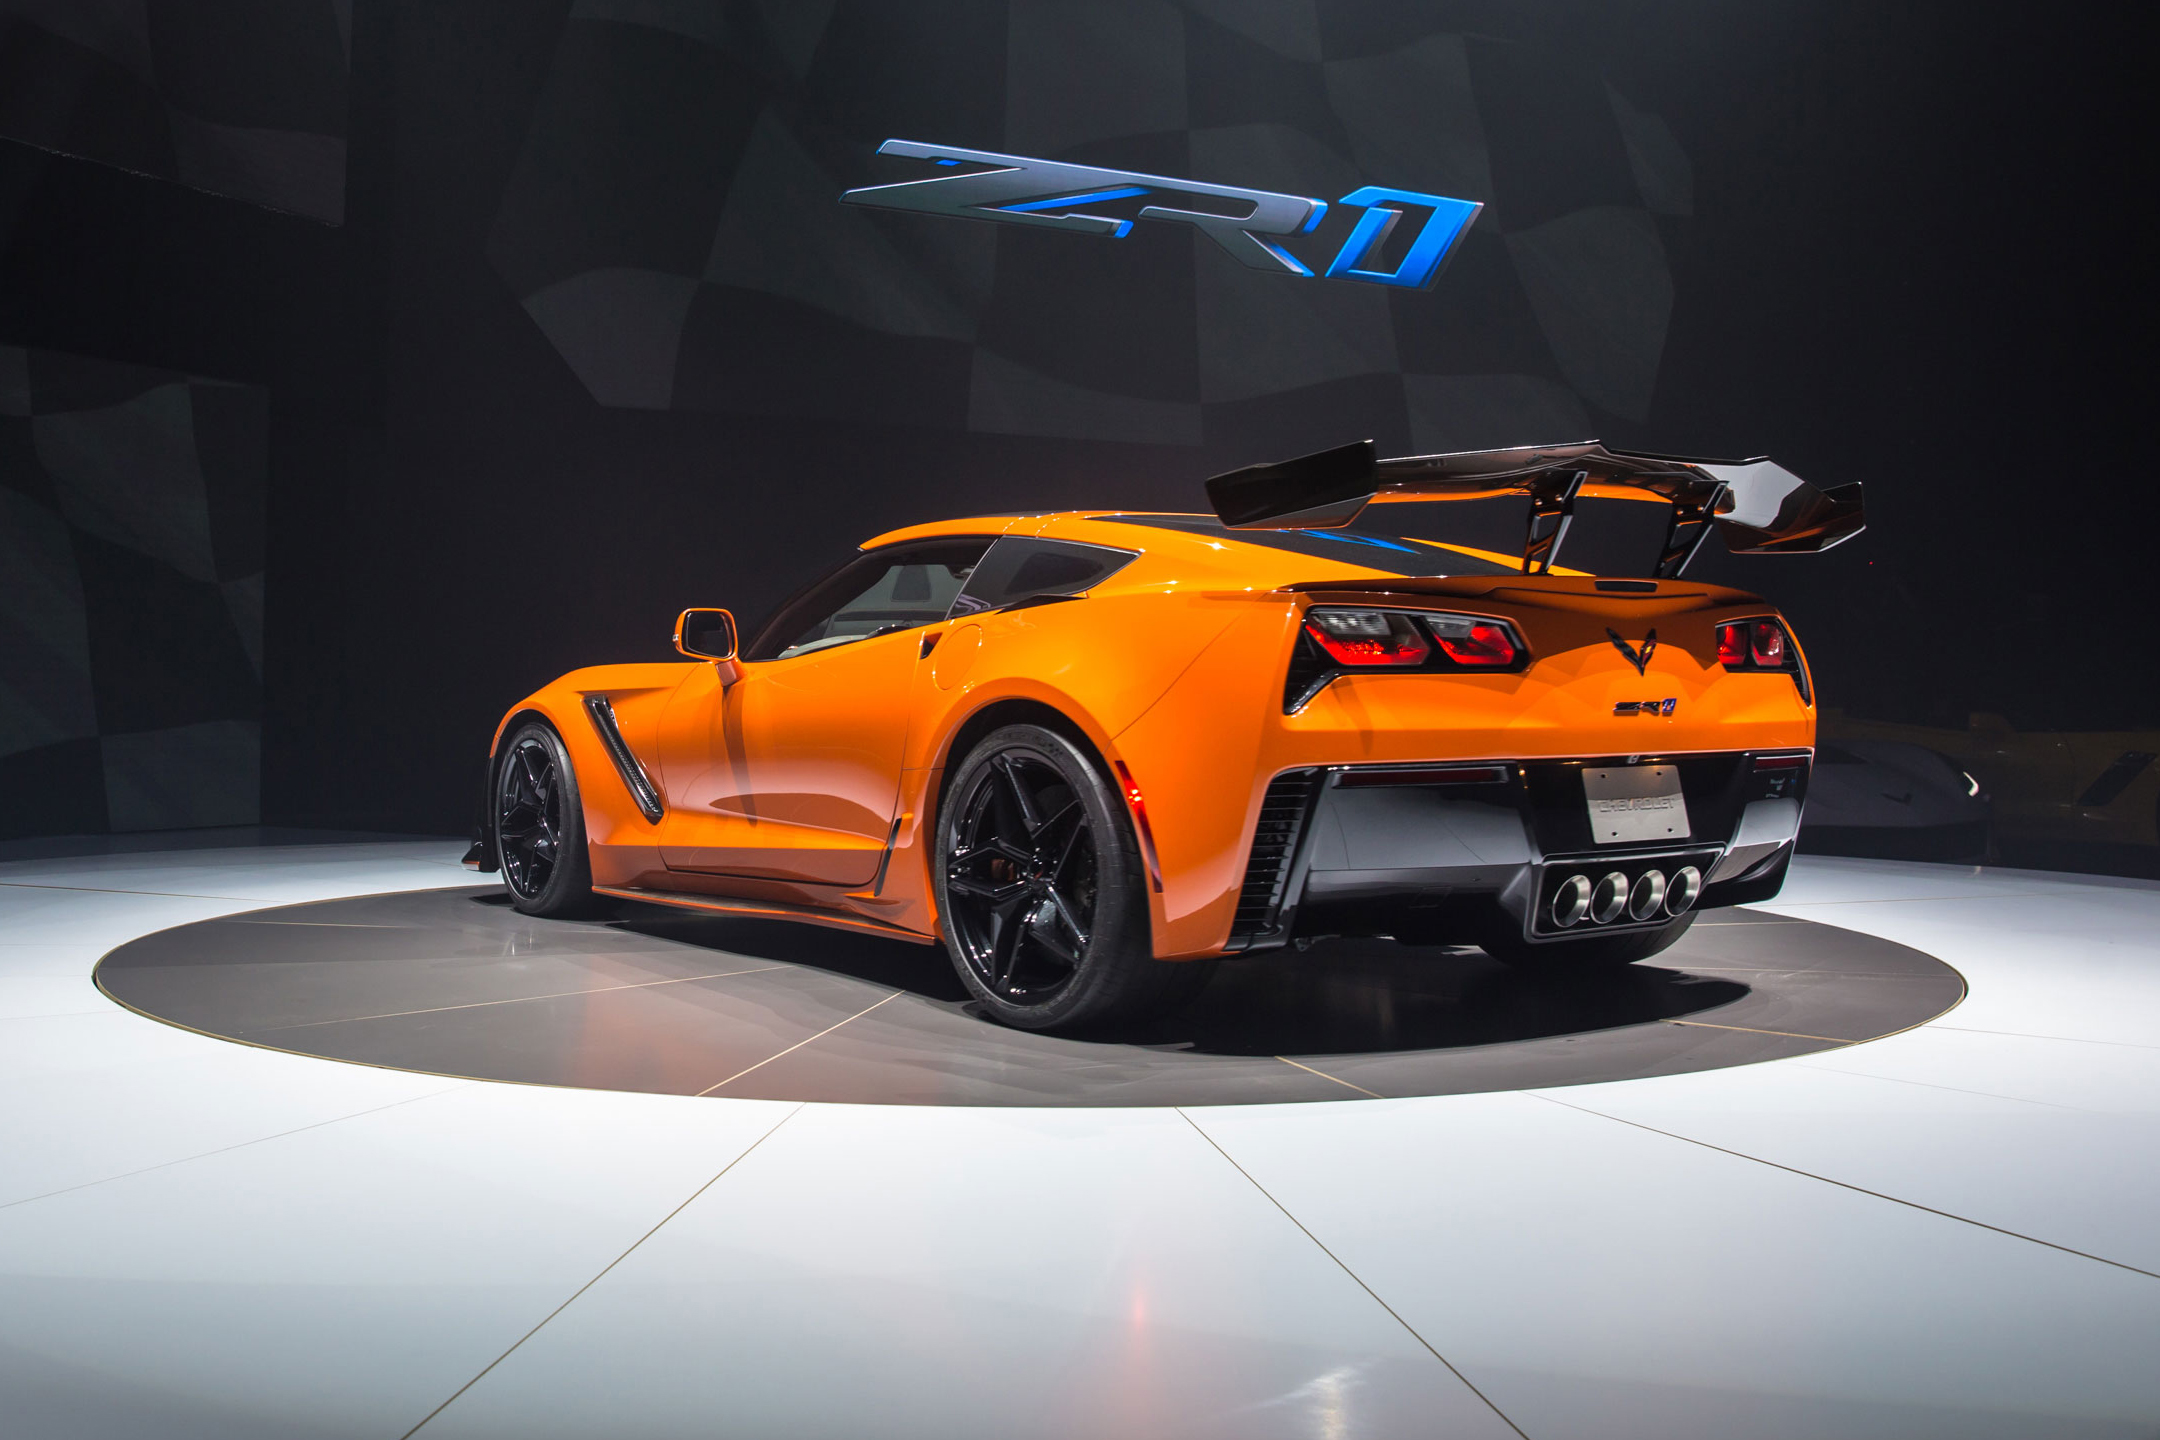 Chevrolet Corvette ZR1- 2019 - rear / arrière - Sebring Orange - 2017 World Premiere